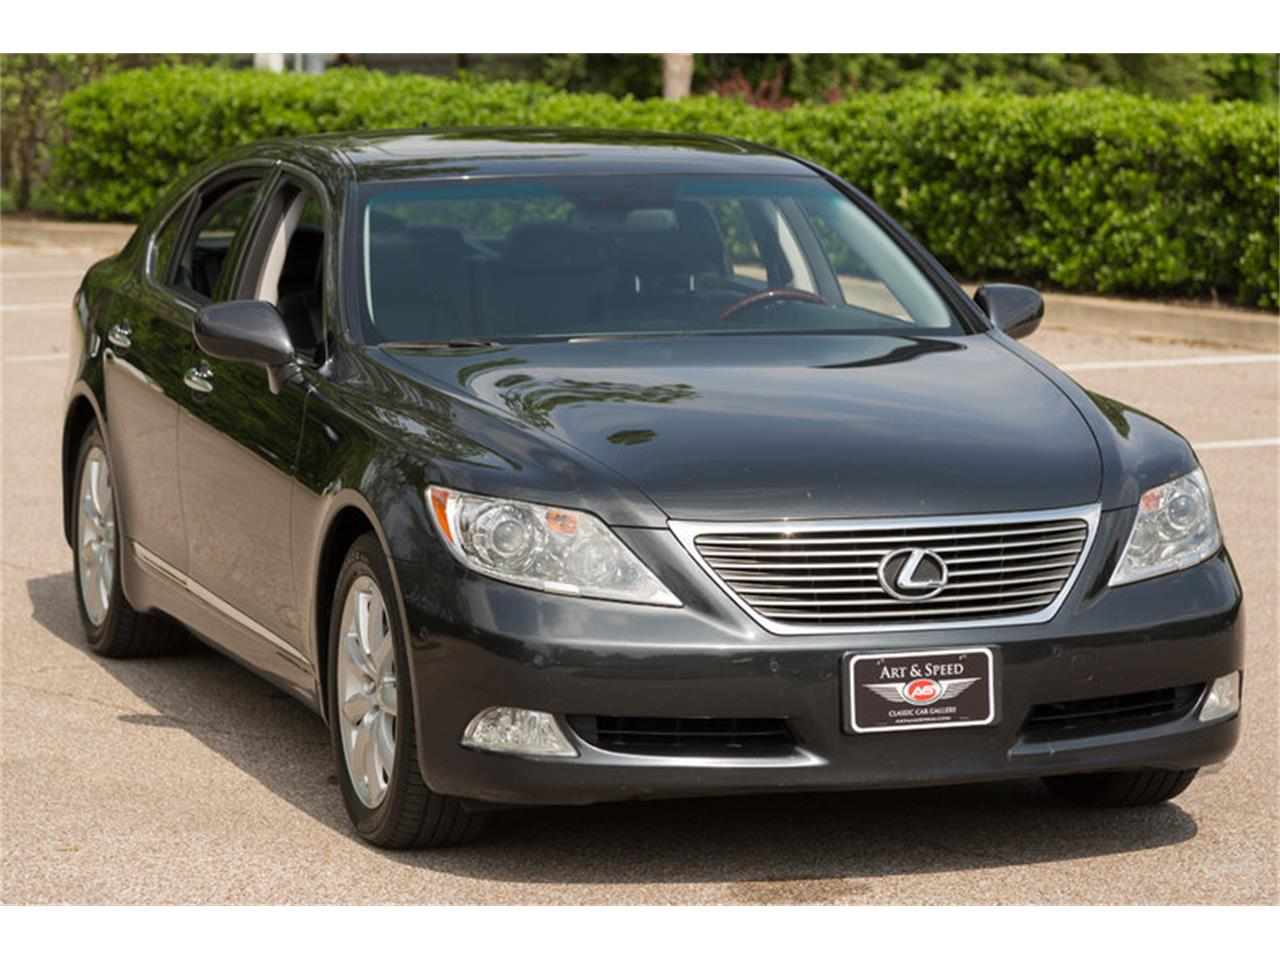 Large Picture of 2008 Lexus LS460 located in Collierville Tennessee Offered by Art & Speed - L6Q7